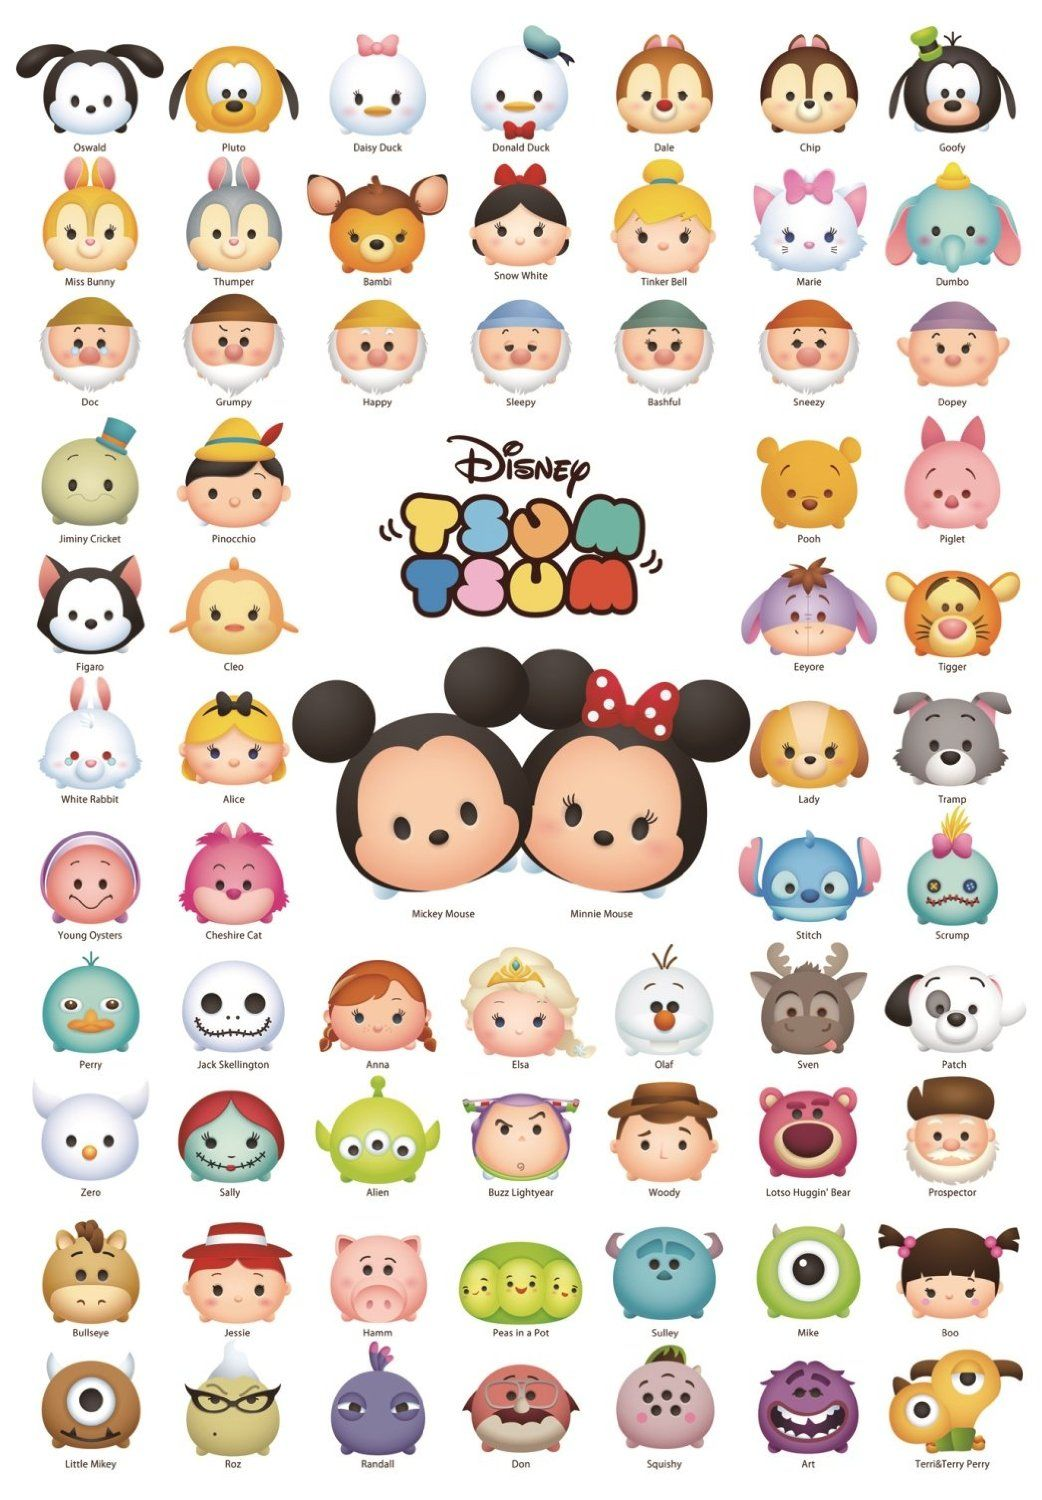 Top 14 Christmas Gifts For The Tsum Tsum Collector Disney Personagens Disney Princesas Disney